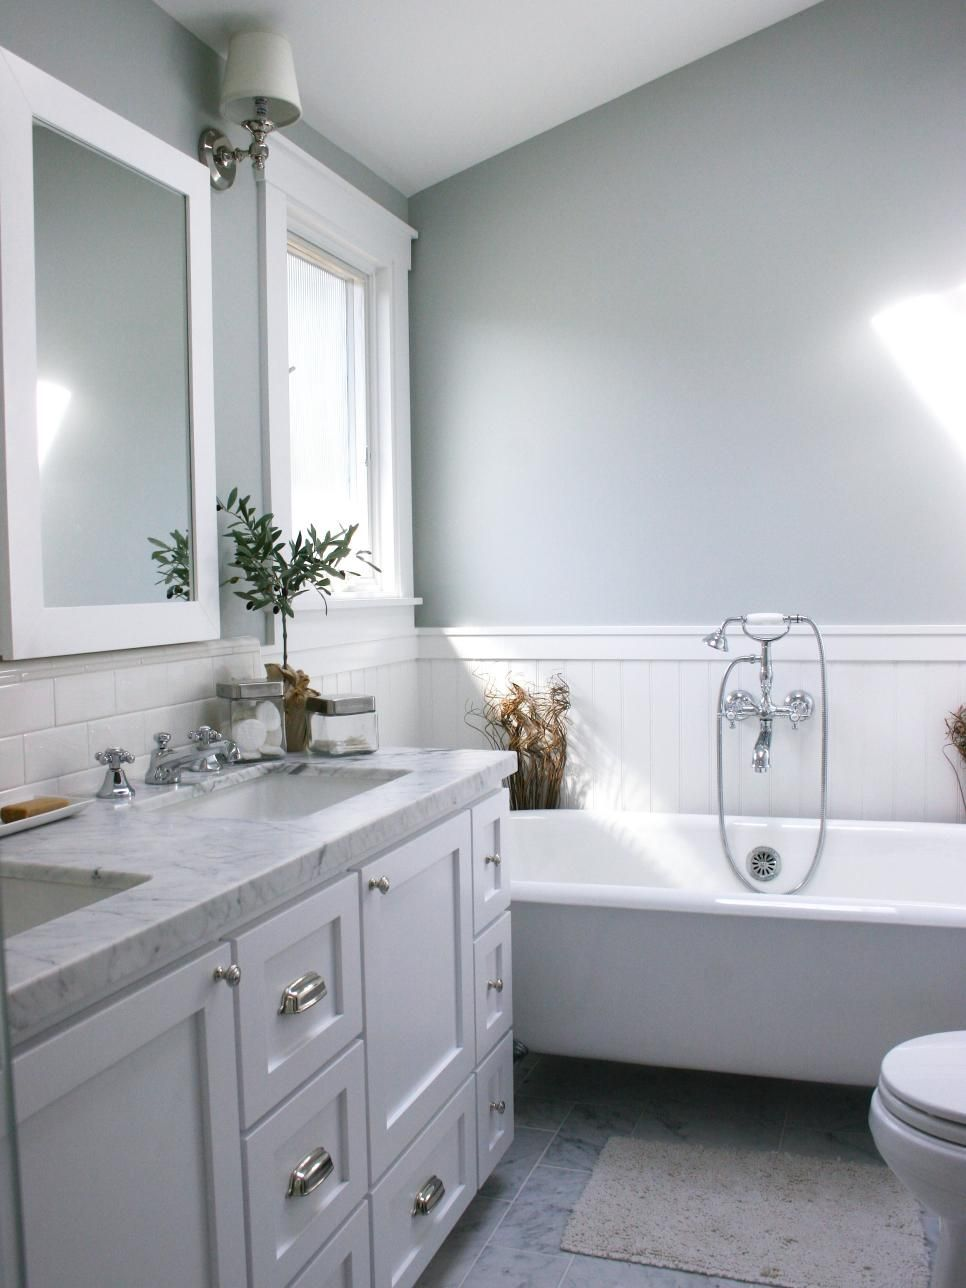 A White Bathtub Backsplash Tile Mirror And Window Frame